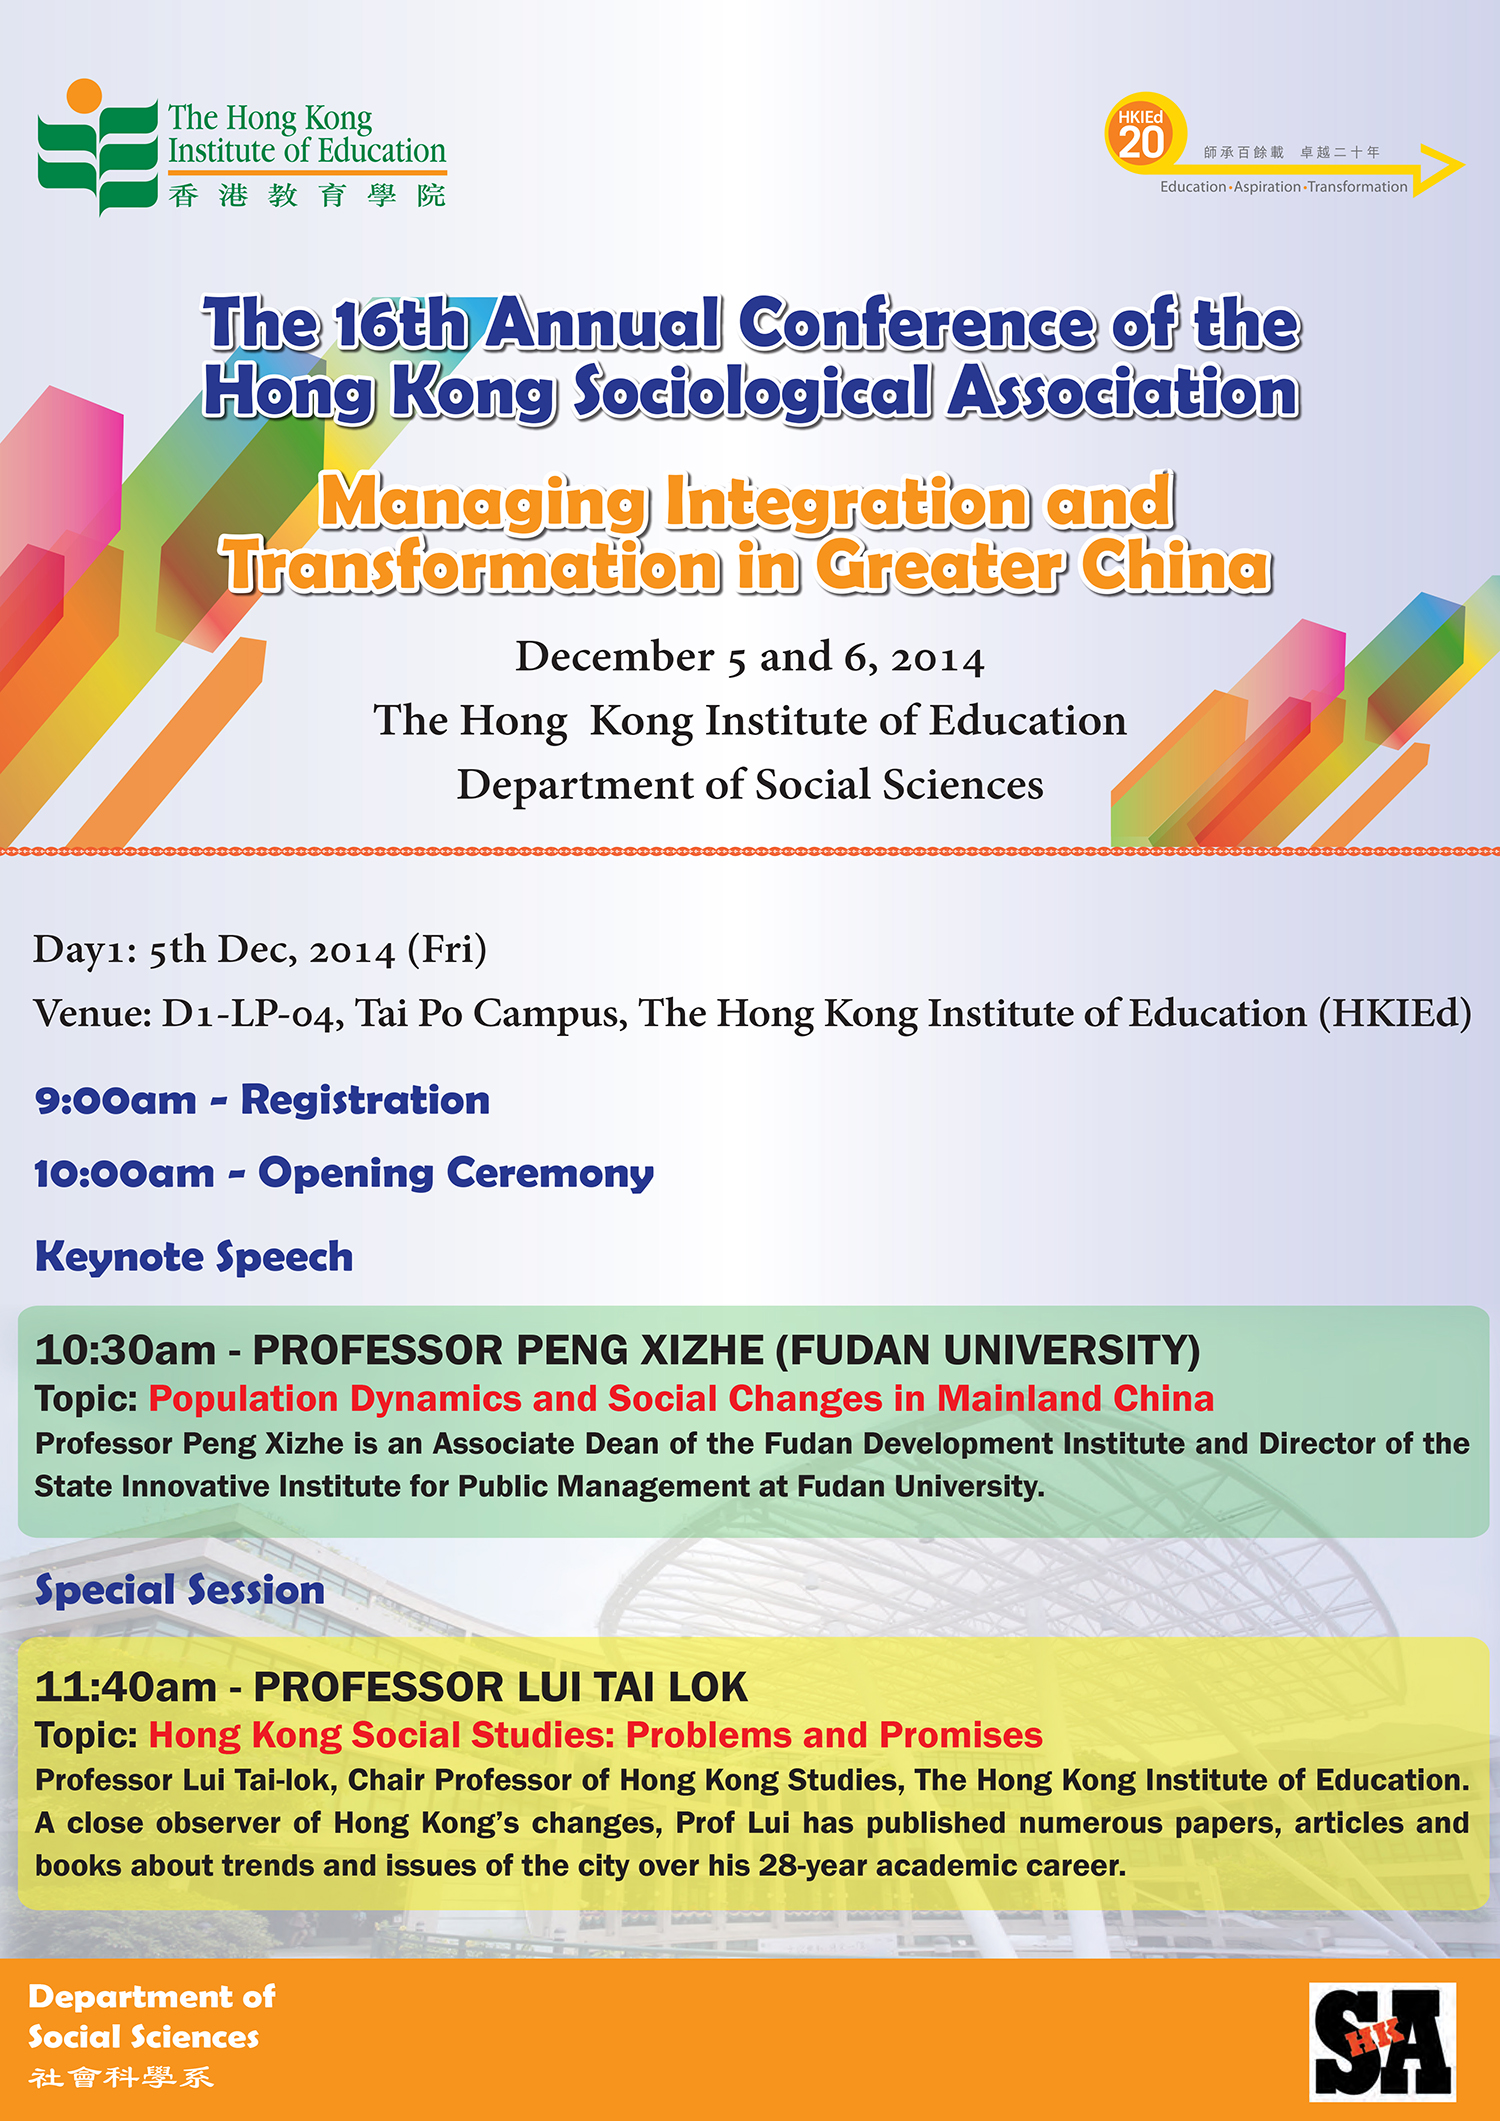 The 16th Annual Conference of the Hong Kong Sociological Association: Managing Integration and Transformation in Greater China